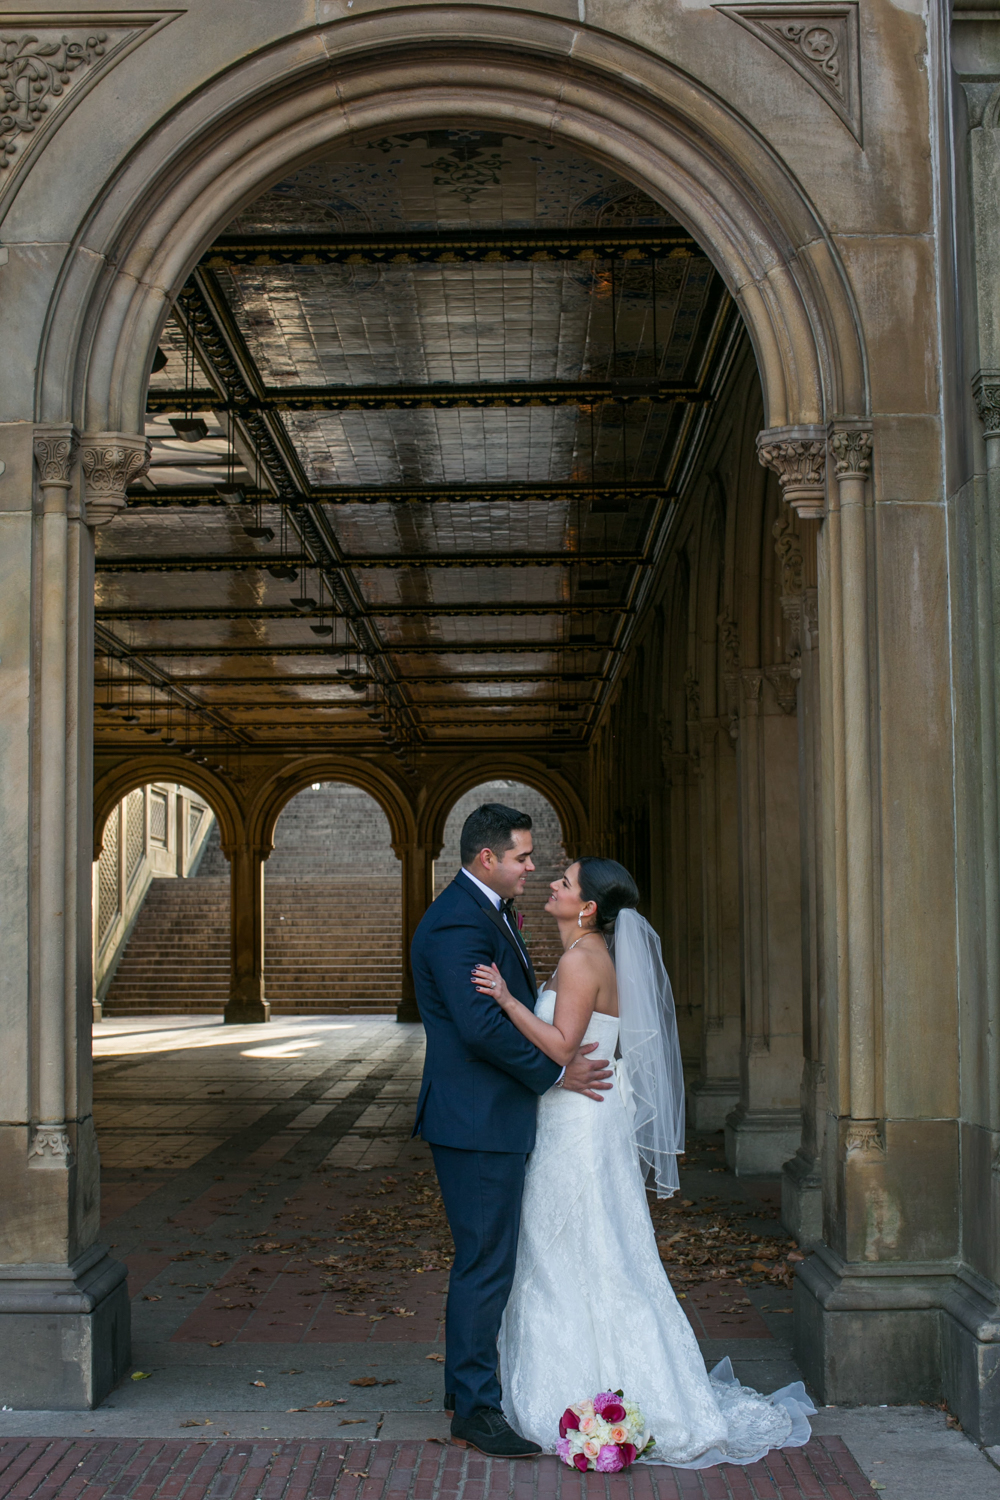 Bride and groom together under arch